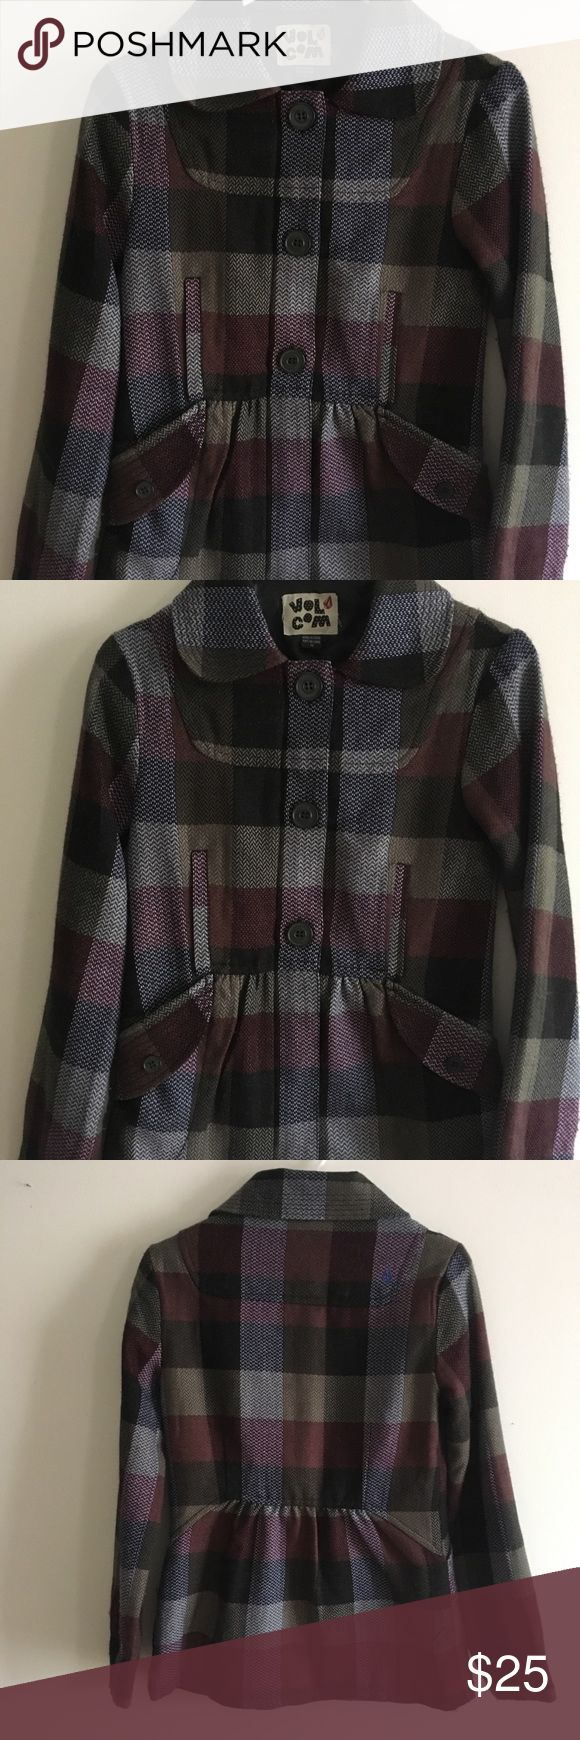 """Volcom """"Plaid to the Bone"""" Plaid Peacoat This light weight plaid peacoat is purple, burgundy, with olive and blue tones. Slight empire waist with button side pockets. Zipper closure with three buttons down the middle. It's a lightweight wool with silk lining. Minimal piling and in very good condition! Volcom Jackets & Coats Pea Coats"""